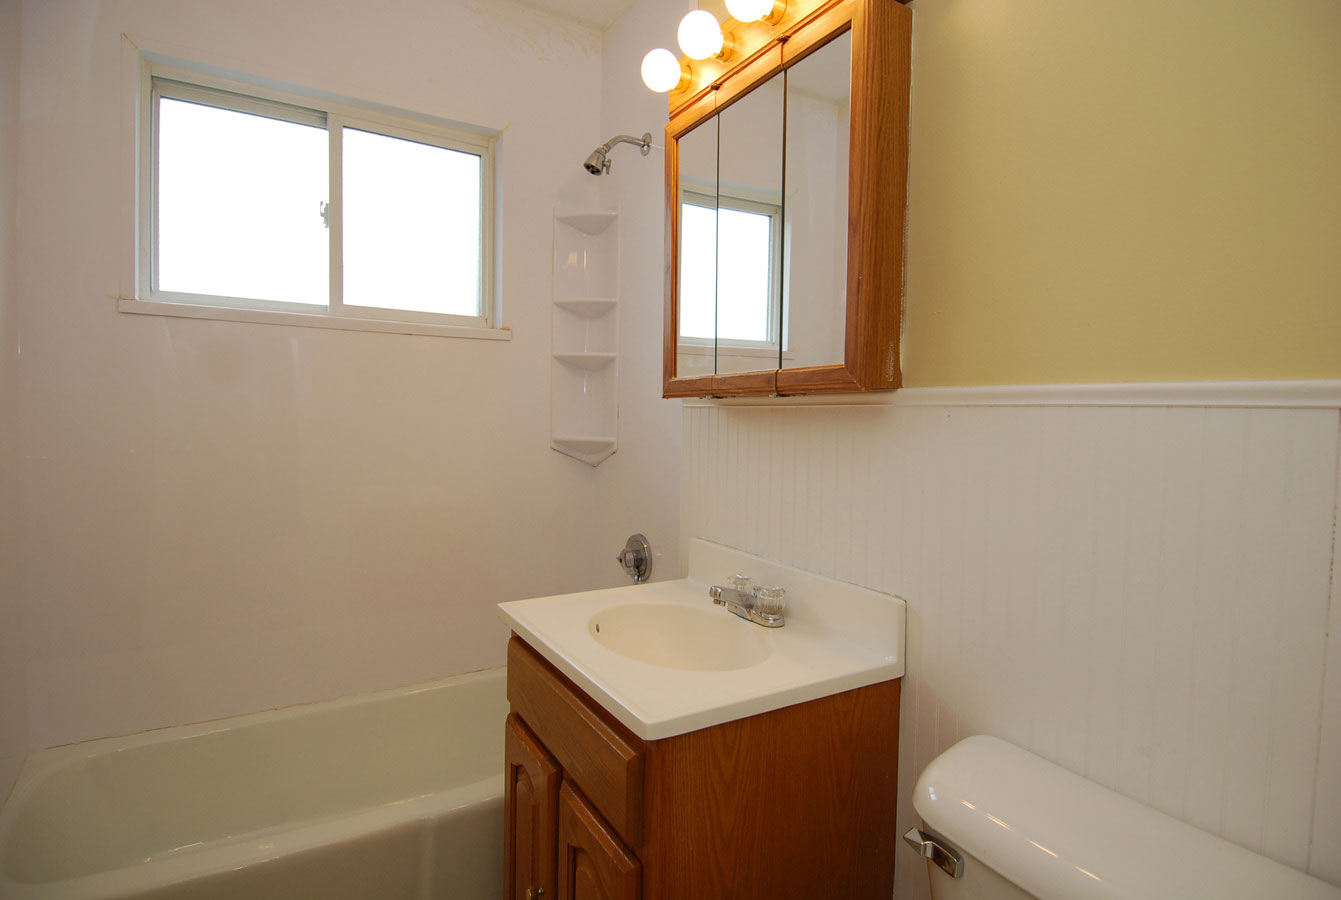 Bathroom - 2 Bedroom Townhouse, Wellington Terrace, Manchester NH